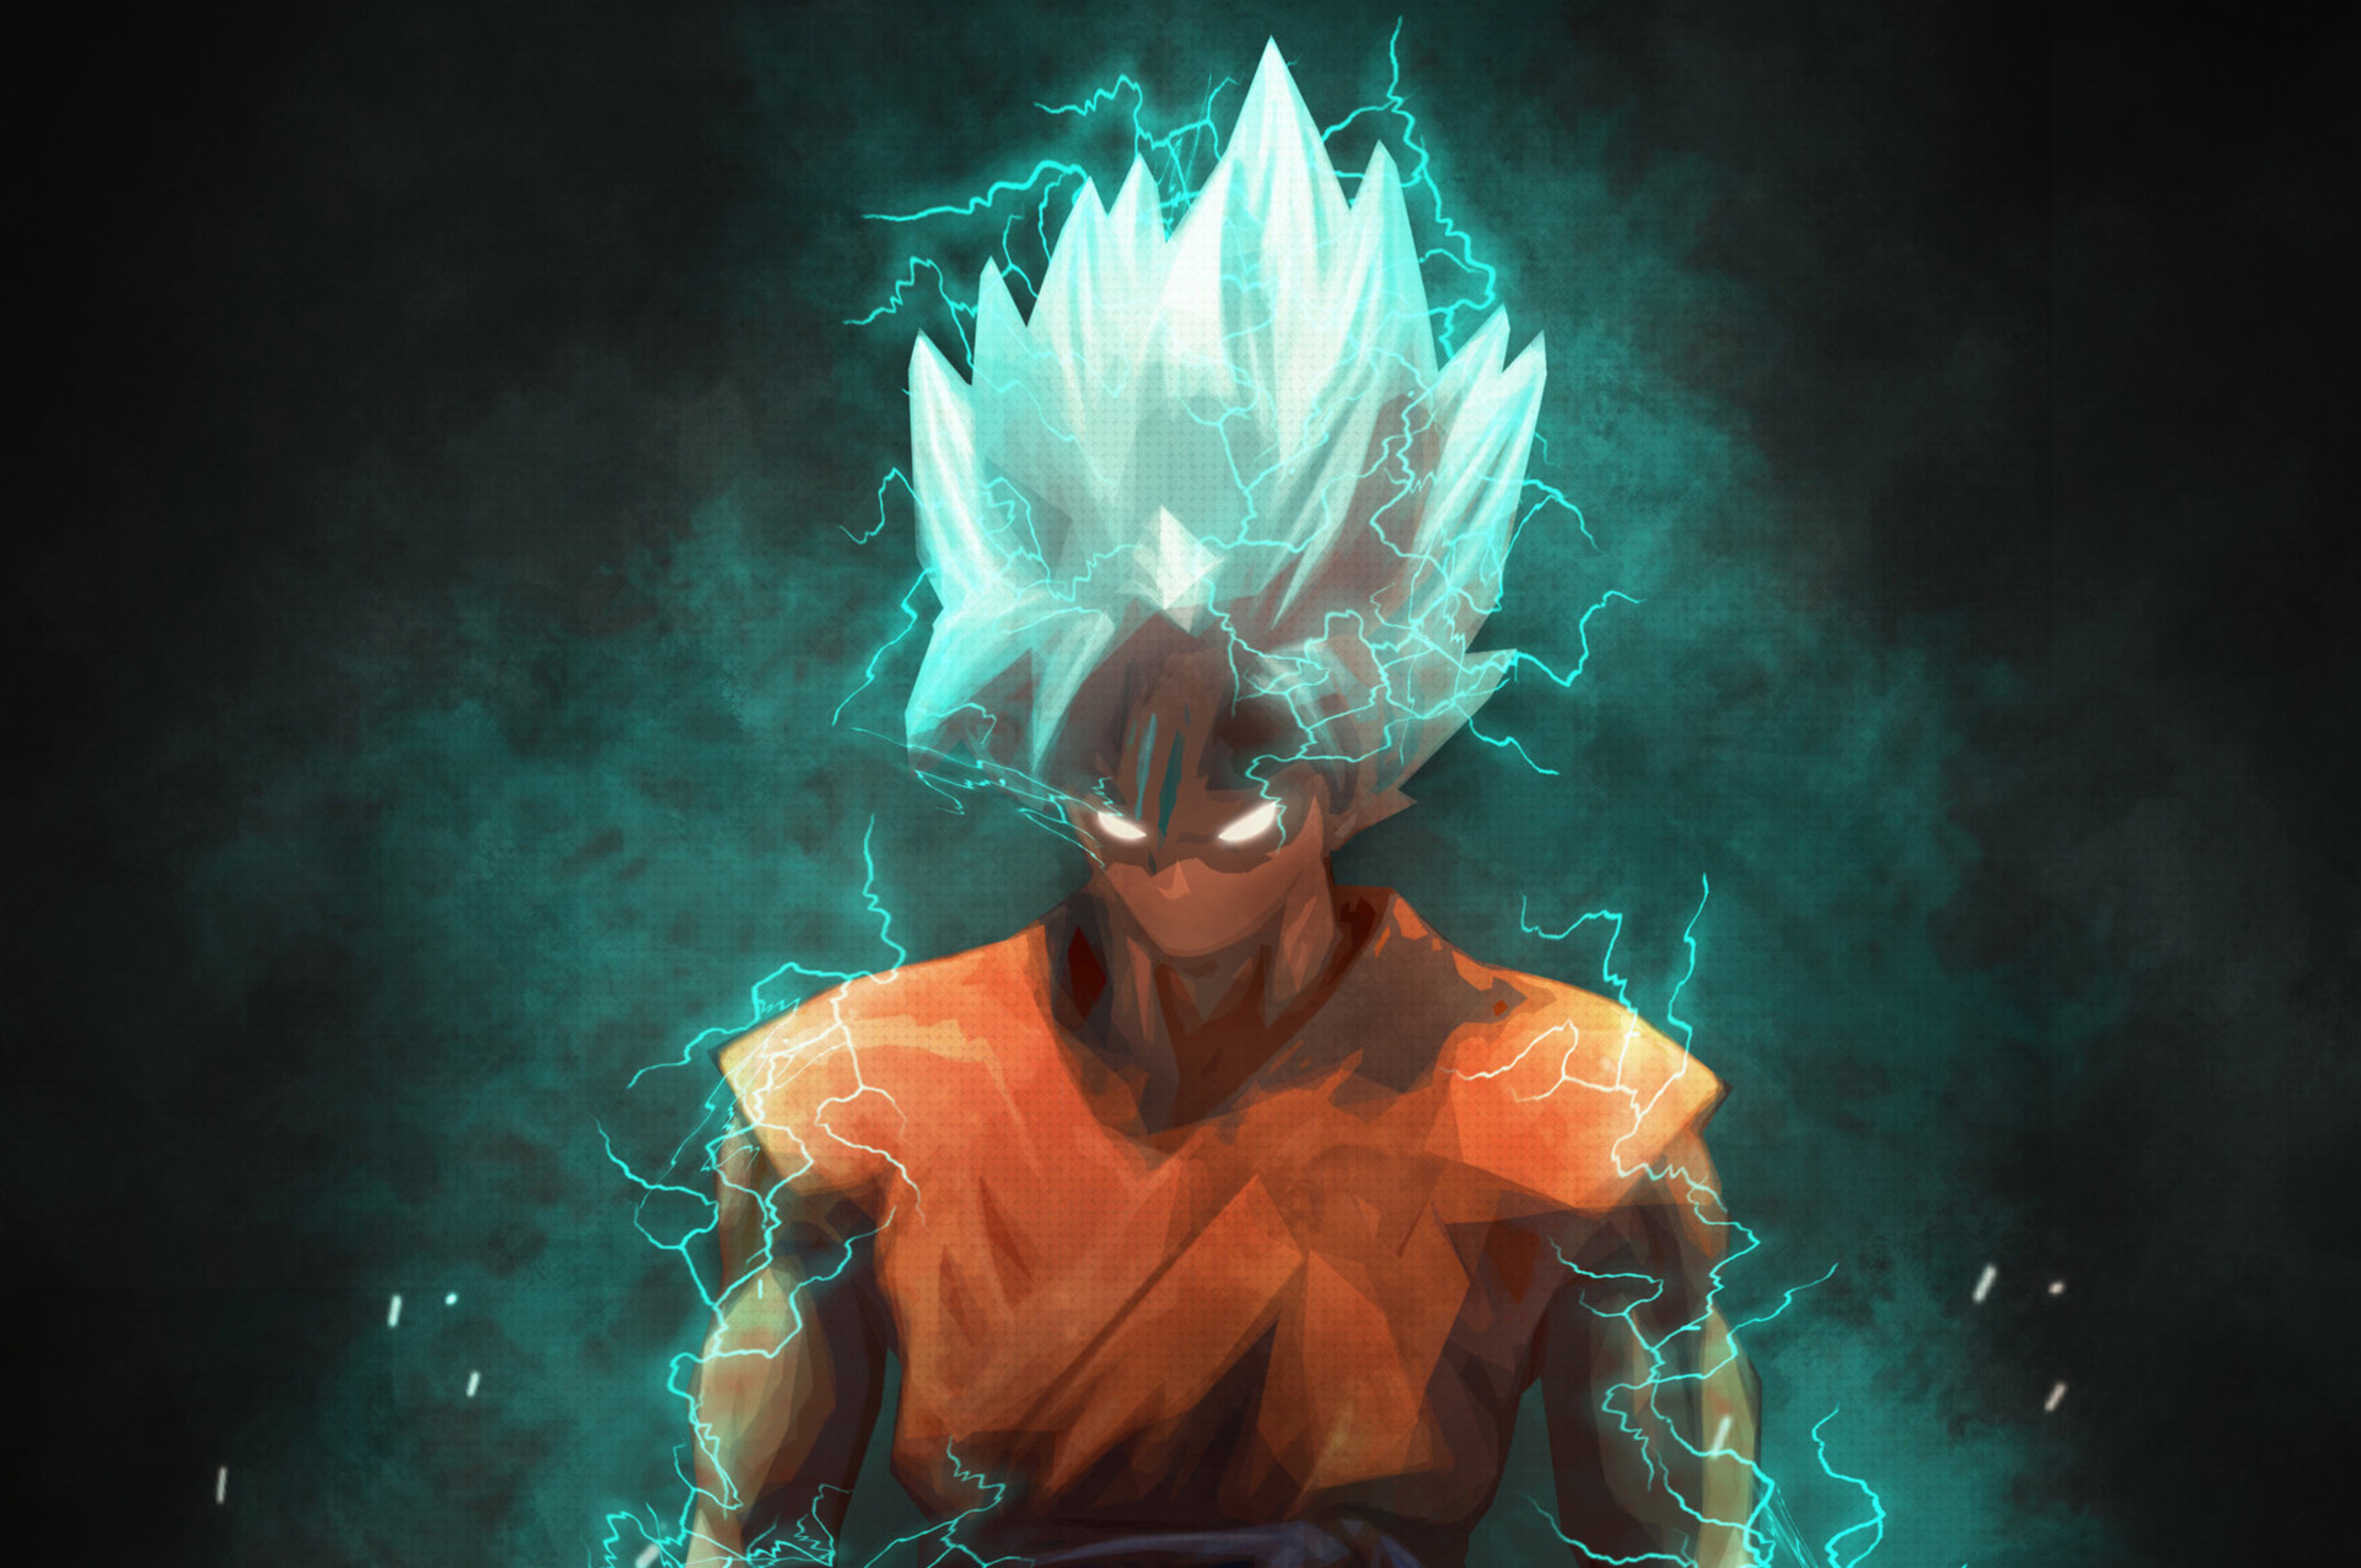 2560x1700 Saiyan God Chromebook Pixel Hd 4k Wallpapers Images